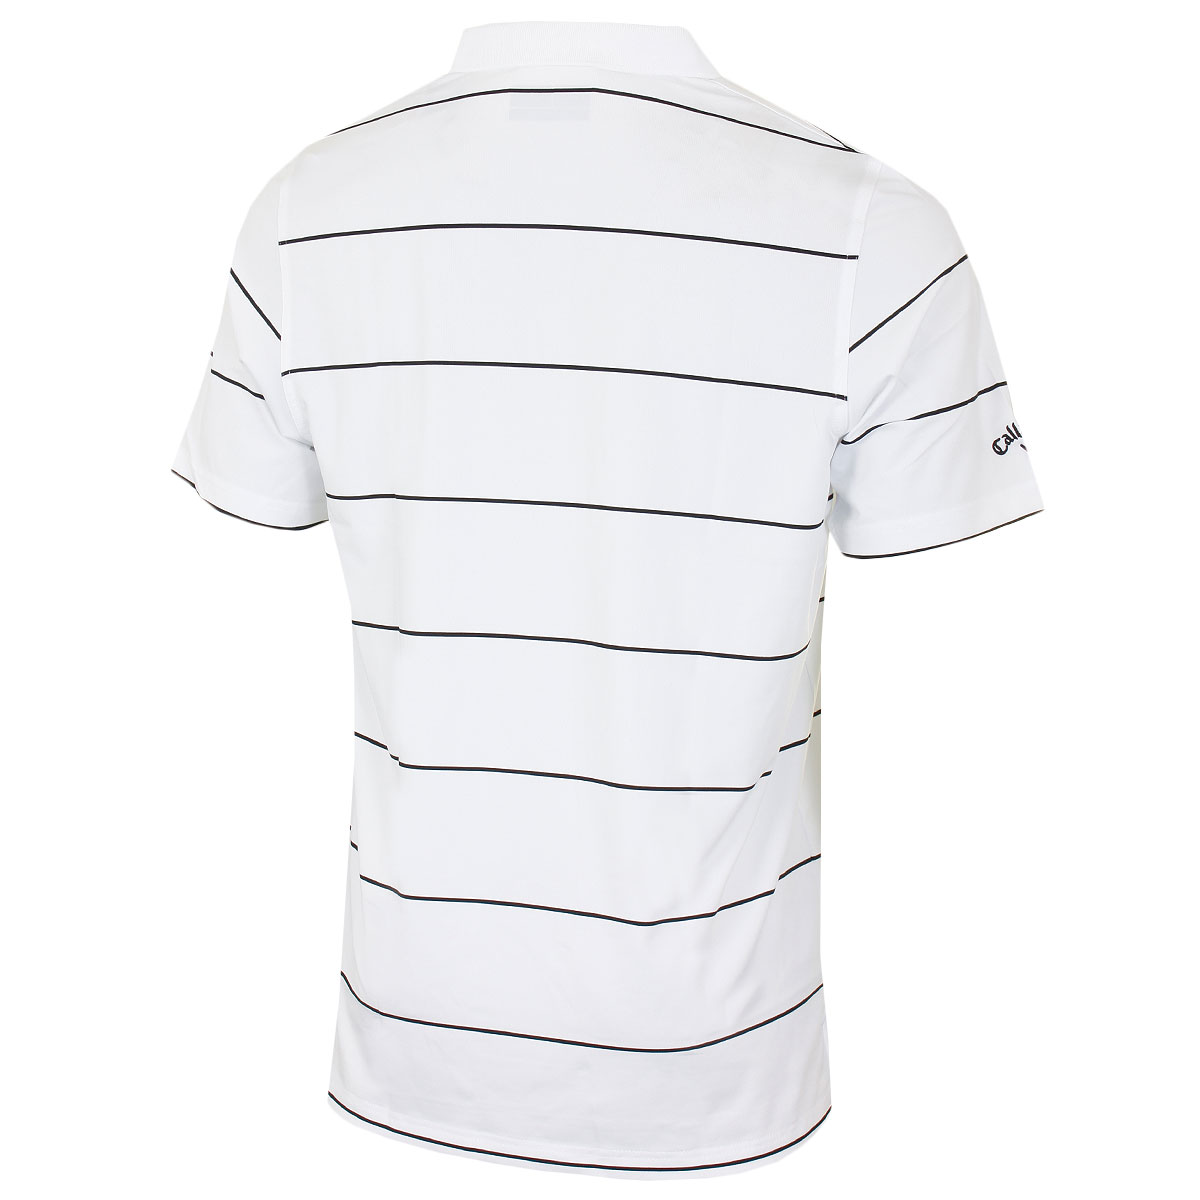 Callaway-Golf-Mens-Chev-Auto-Stripe-Polo-Shirt-Opti-Dri-Short-Sleeve-53-OFF-RRP thumbnail 5